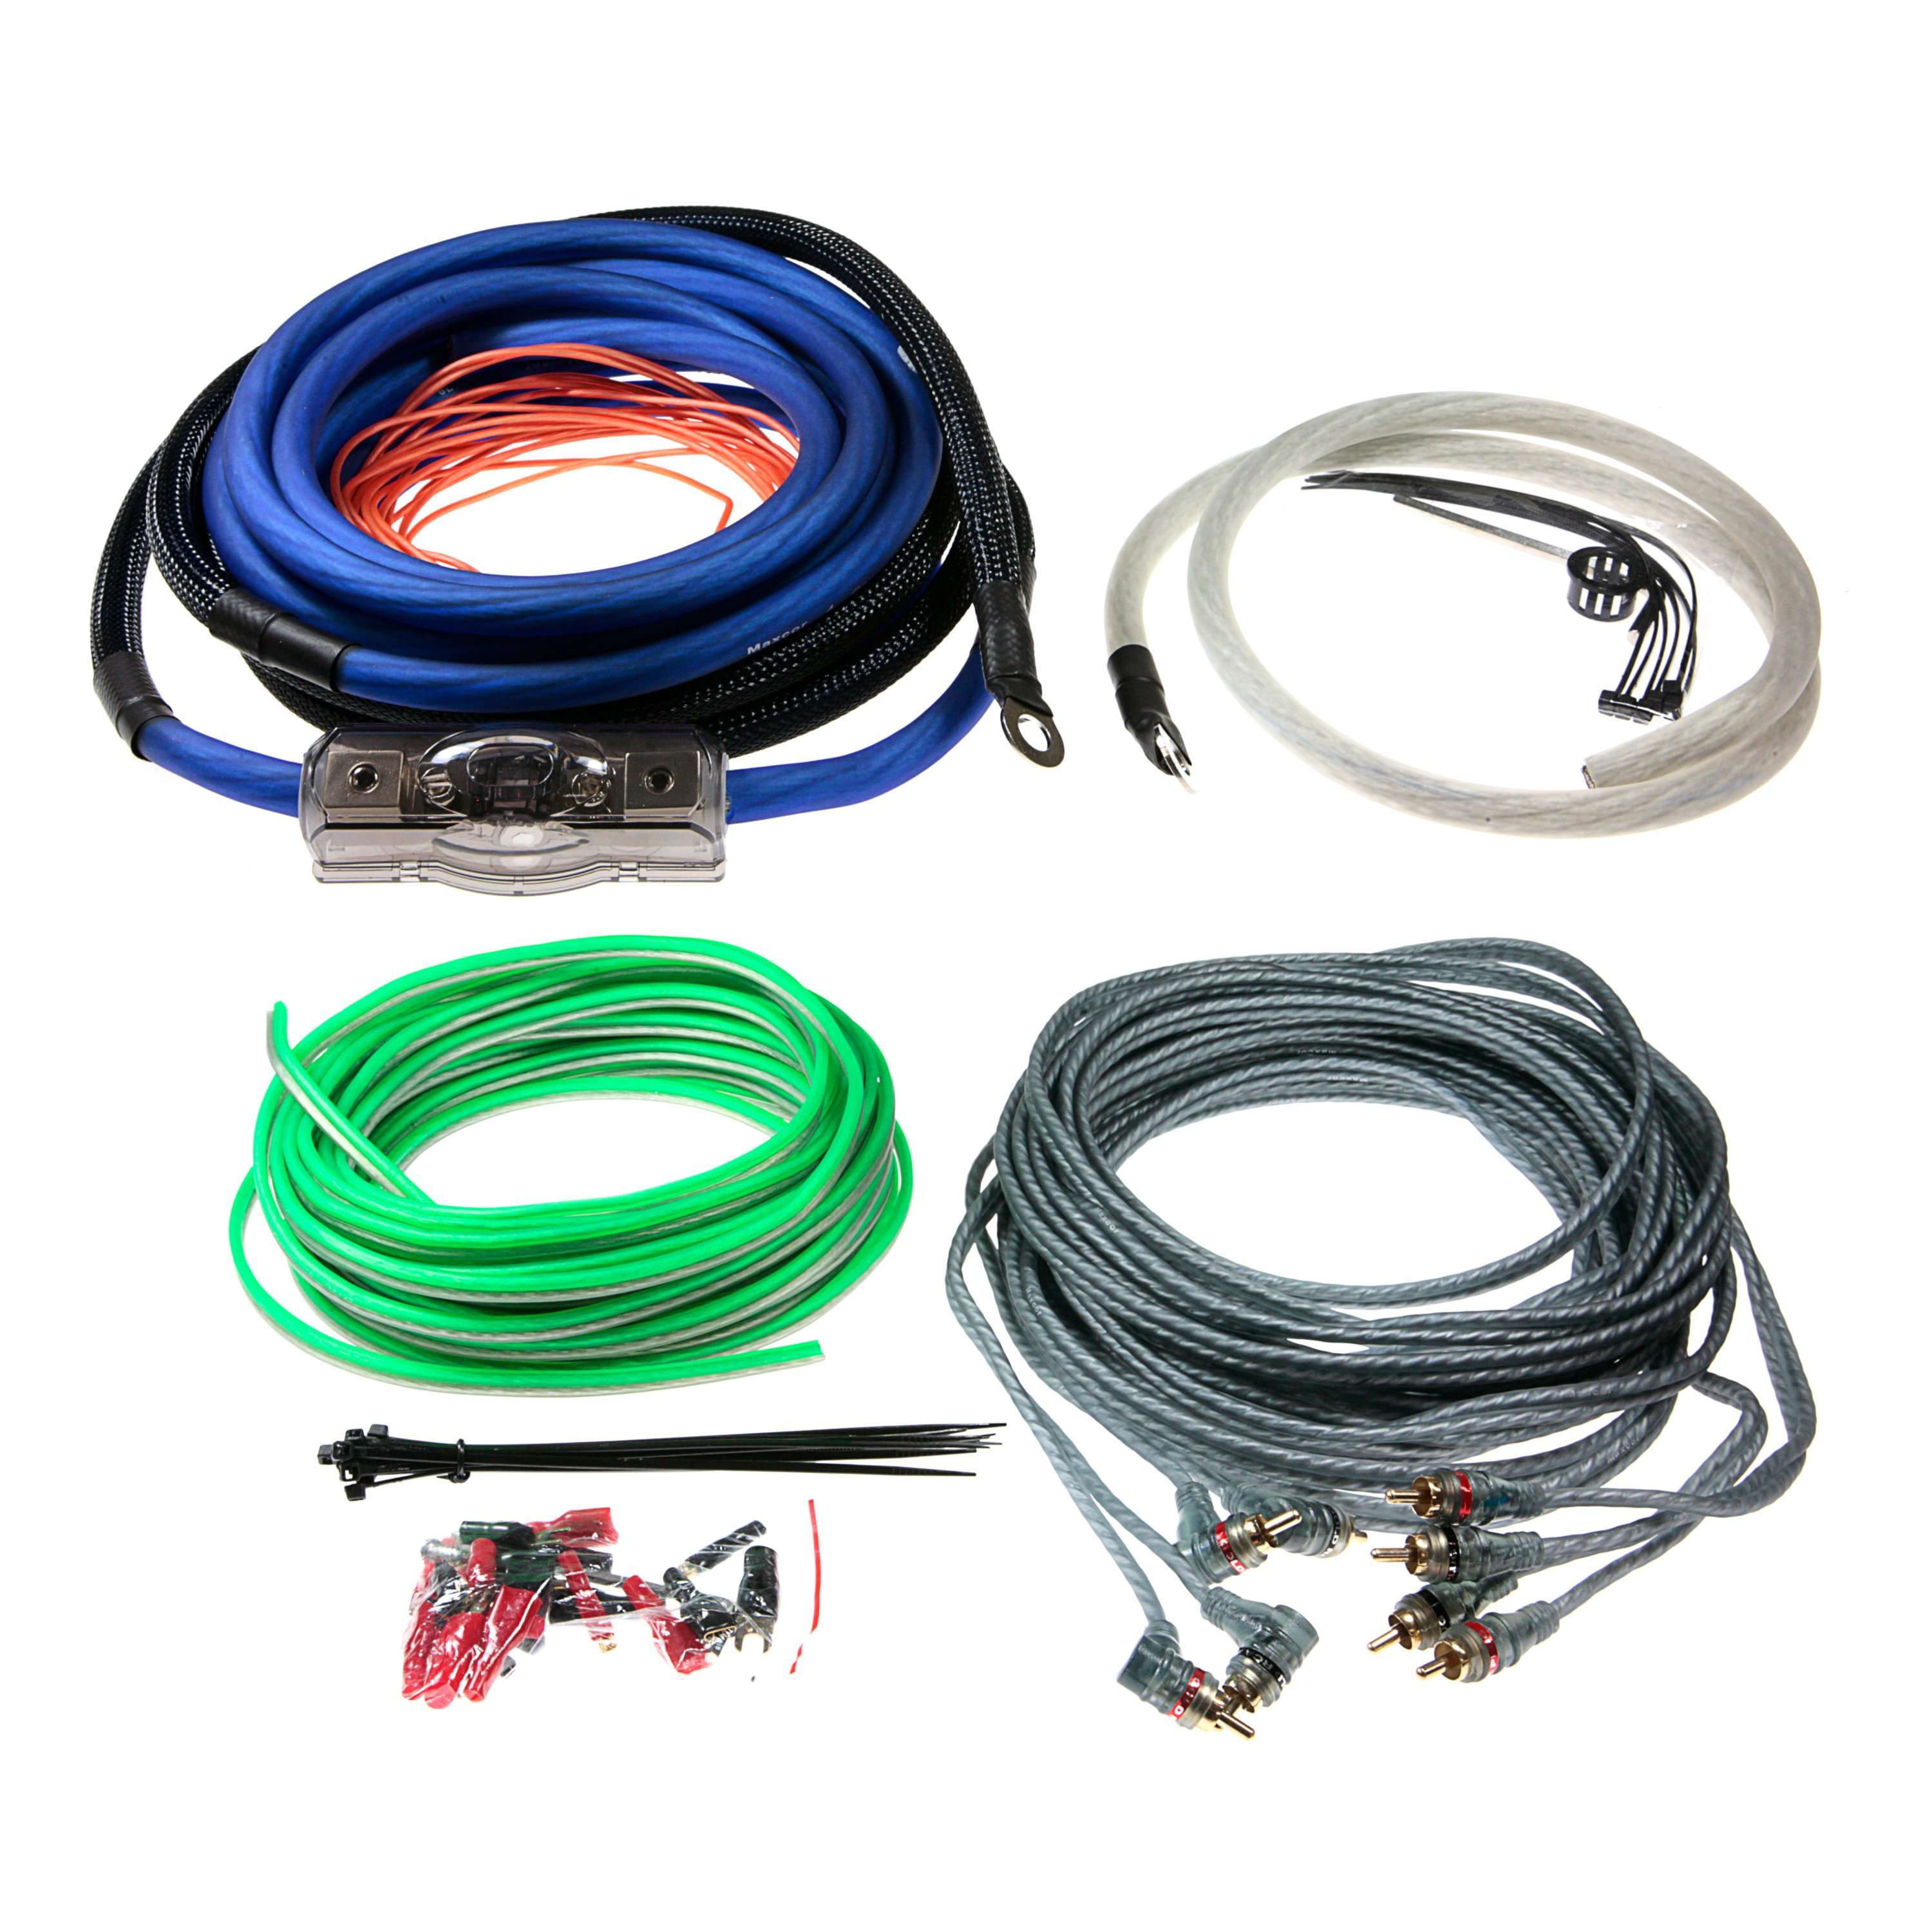 Aerpro First Choice Pro 4 Gauge Amplifier Amp Install Wiring Kit Complete Car Audio Cables Mx44 Maxcor 4awg Channel